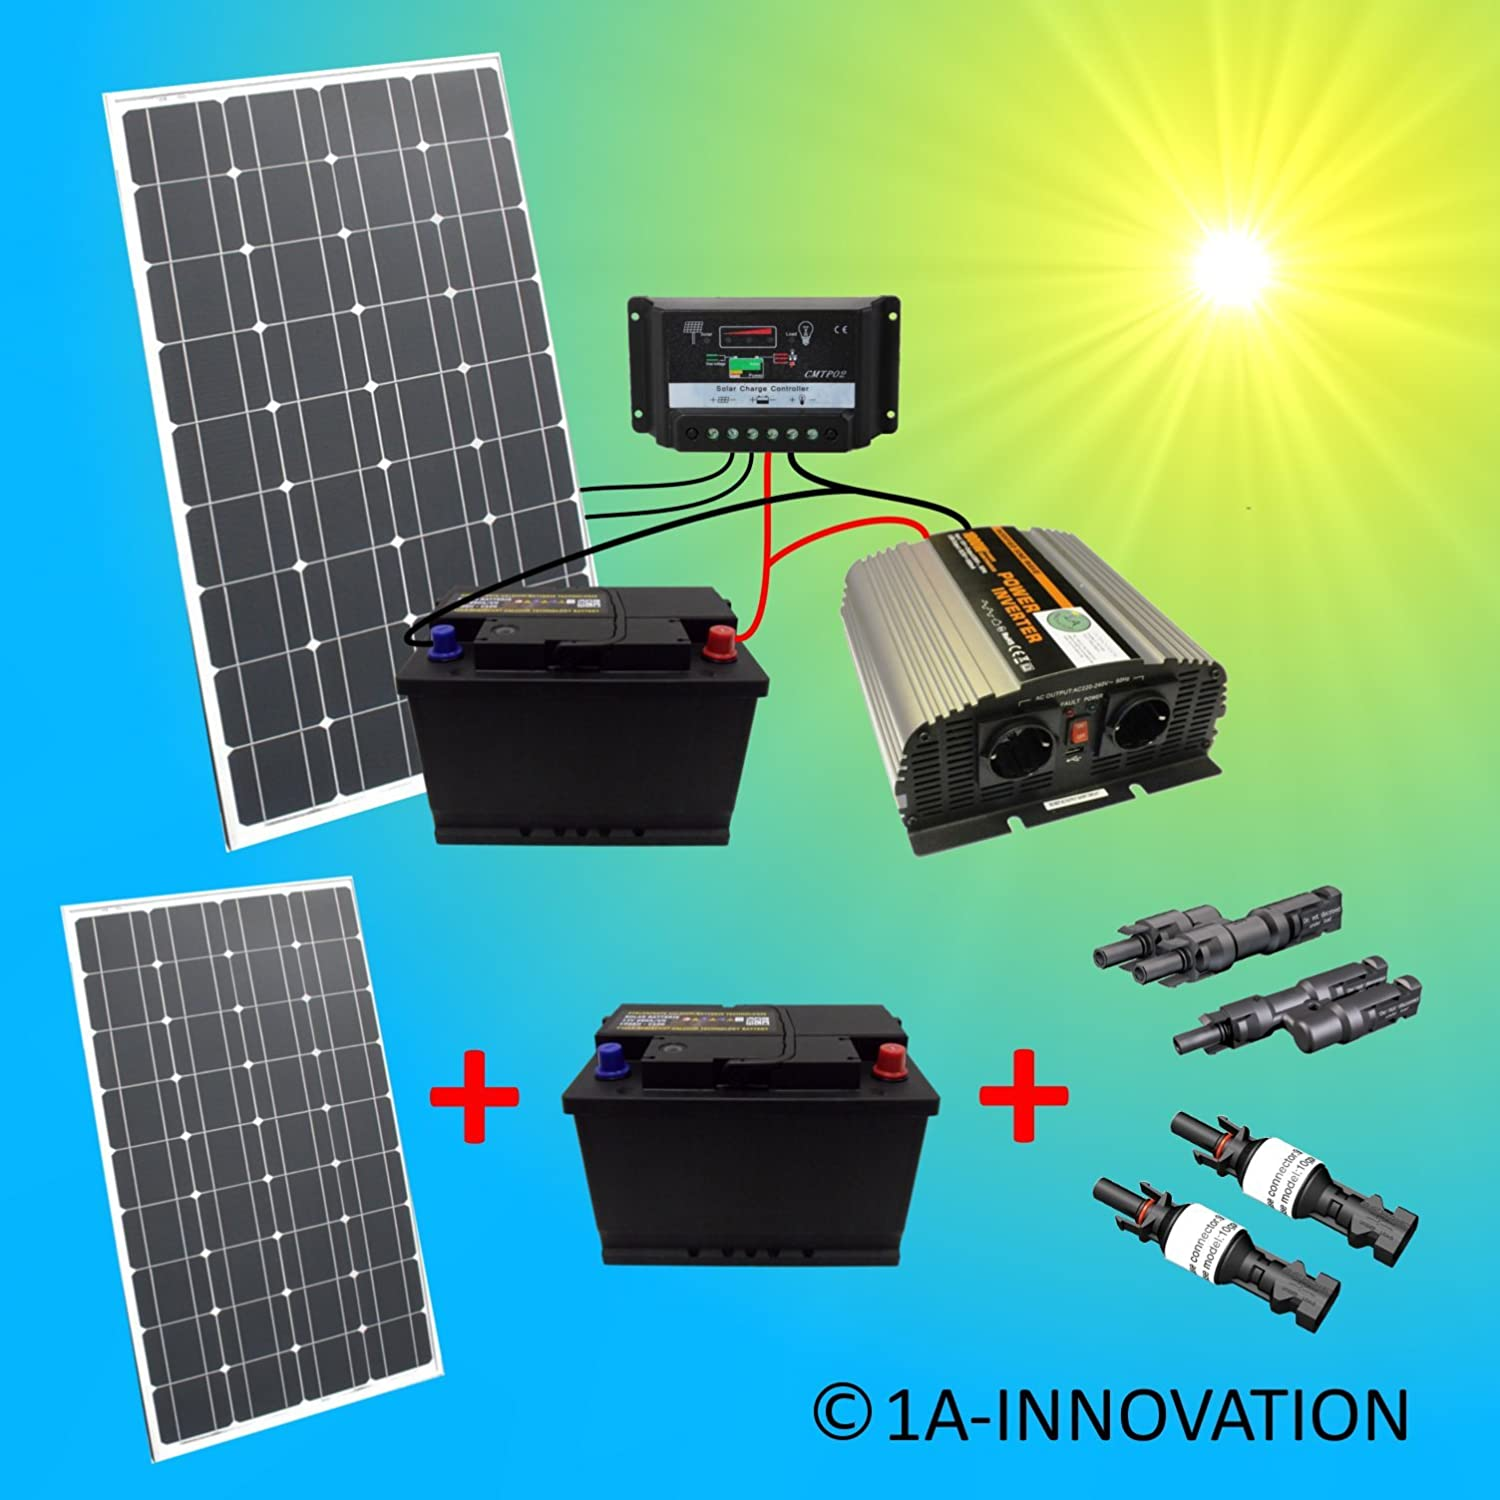 komplette 220v solaranlage t v mit 2x 100ah akkus 200w solarmodul 1000w spannungswandler. Black Bedroom Furniture Sets. Home Design Ideas